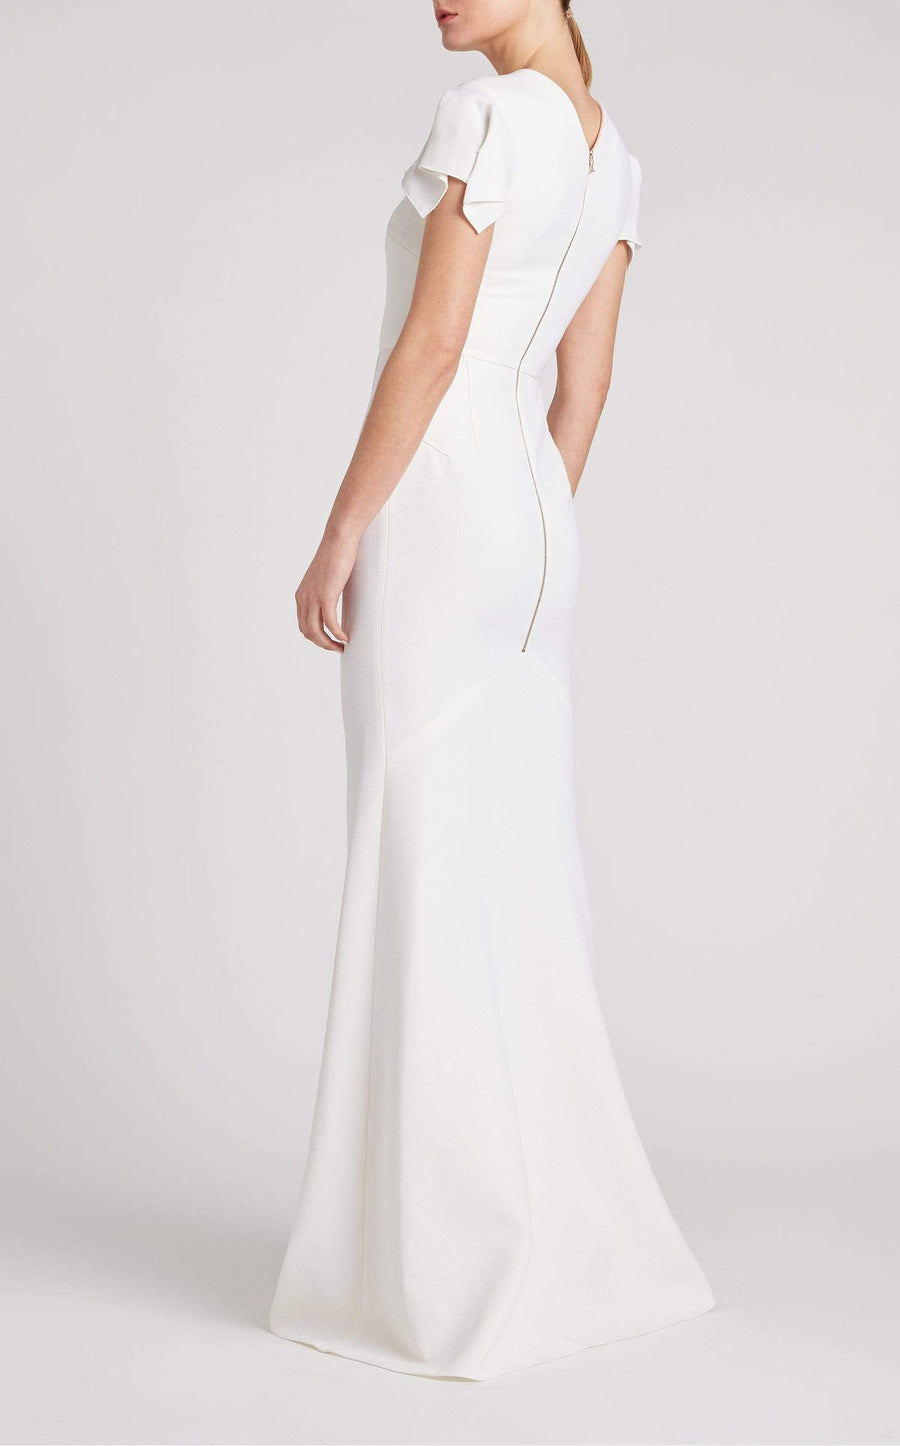 Clovelly Gown In White from Roland Mouret